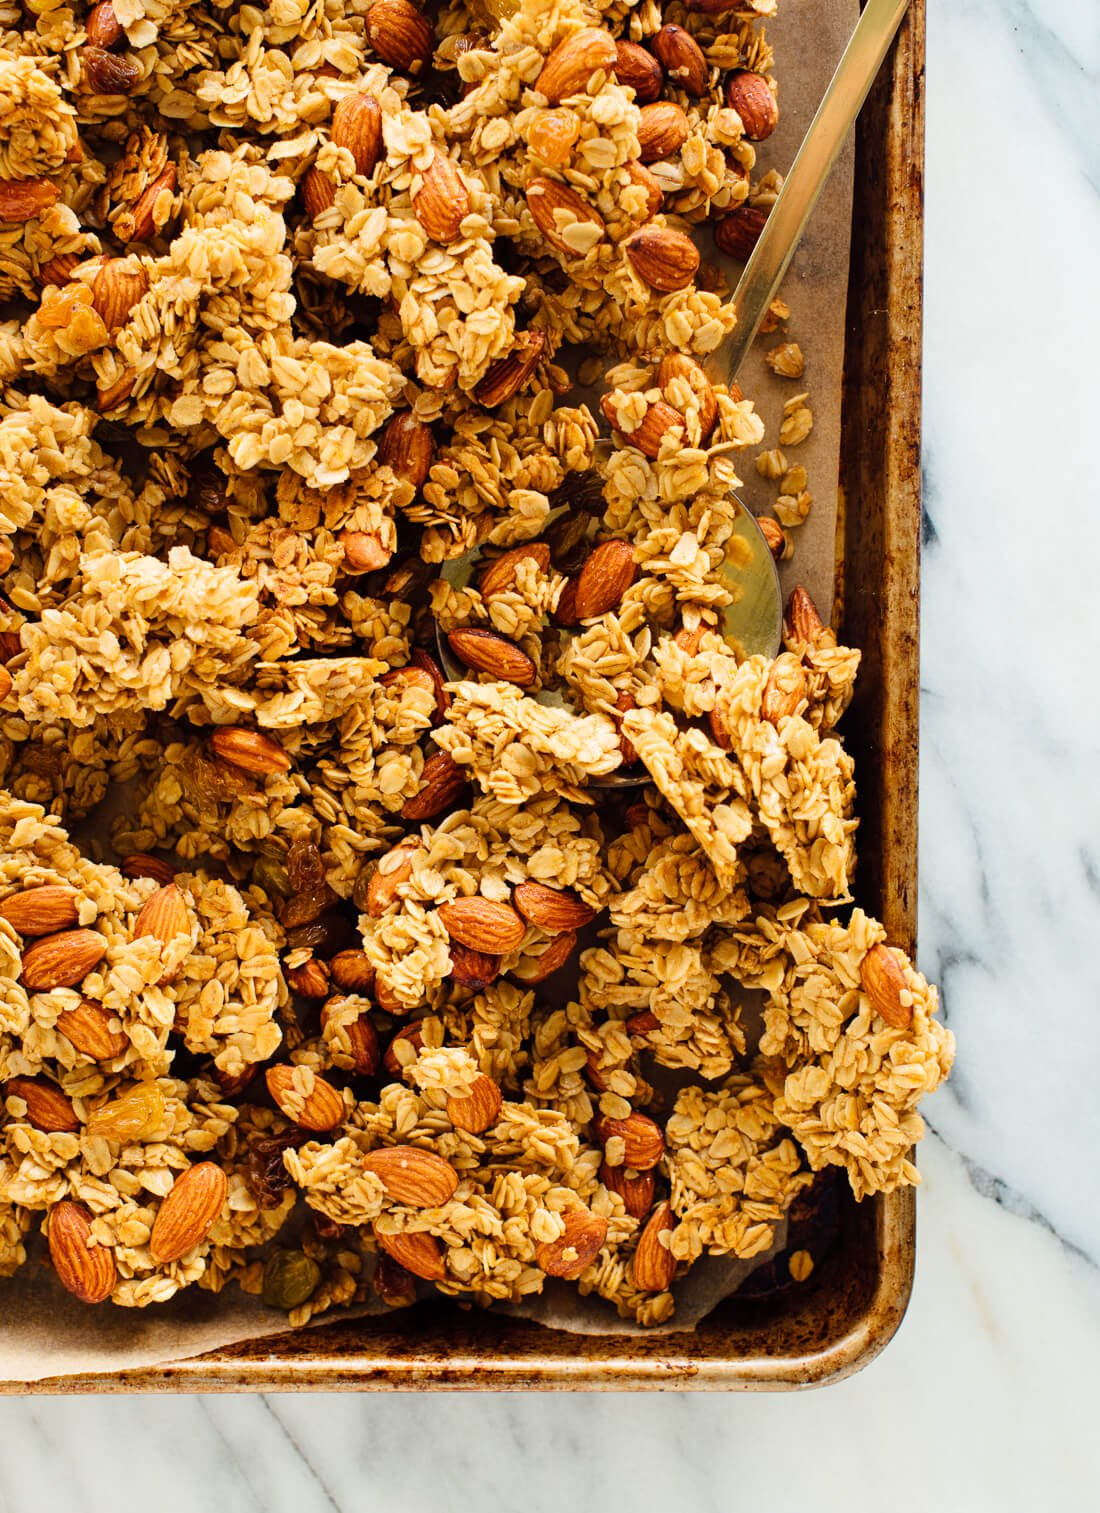 Clumps of orange almond granola